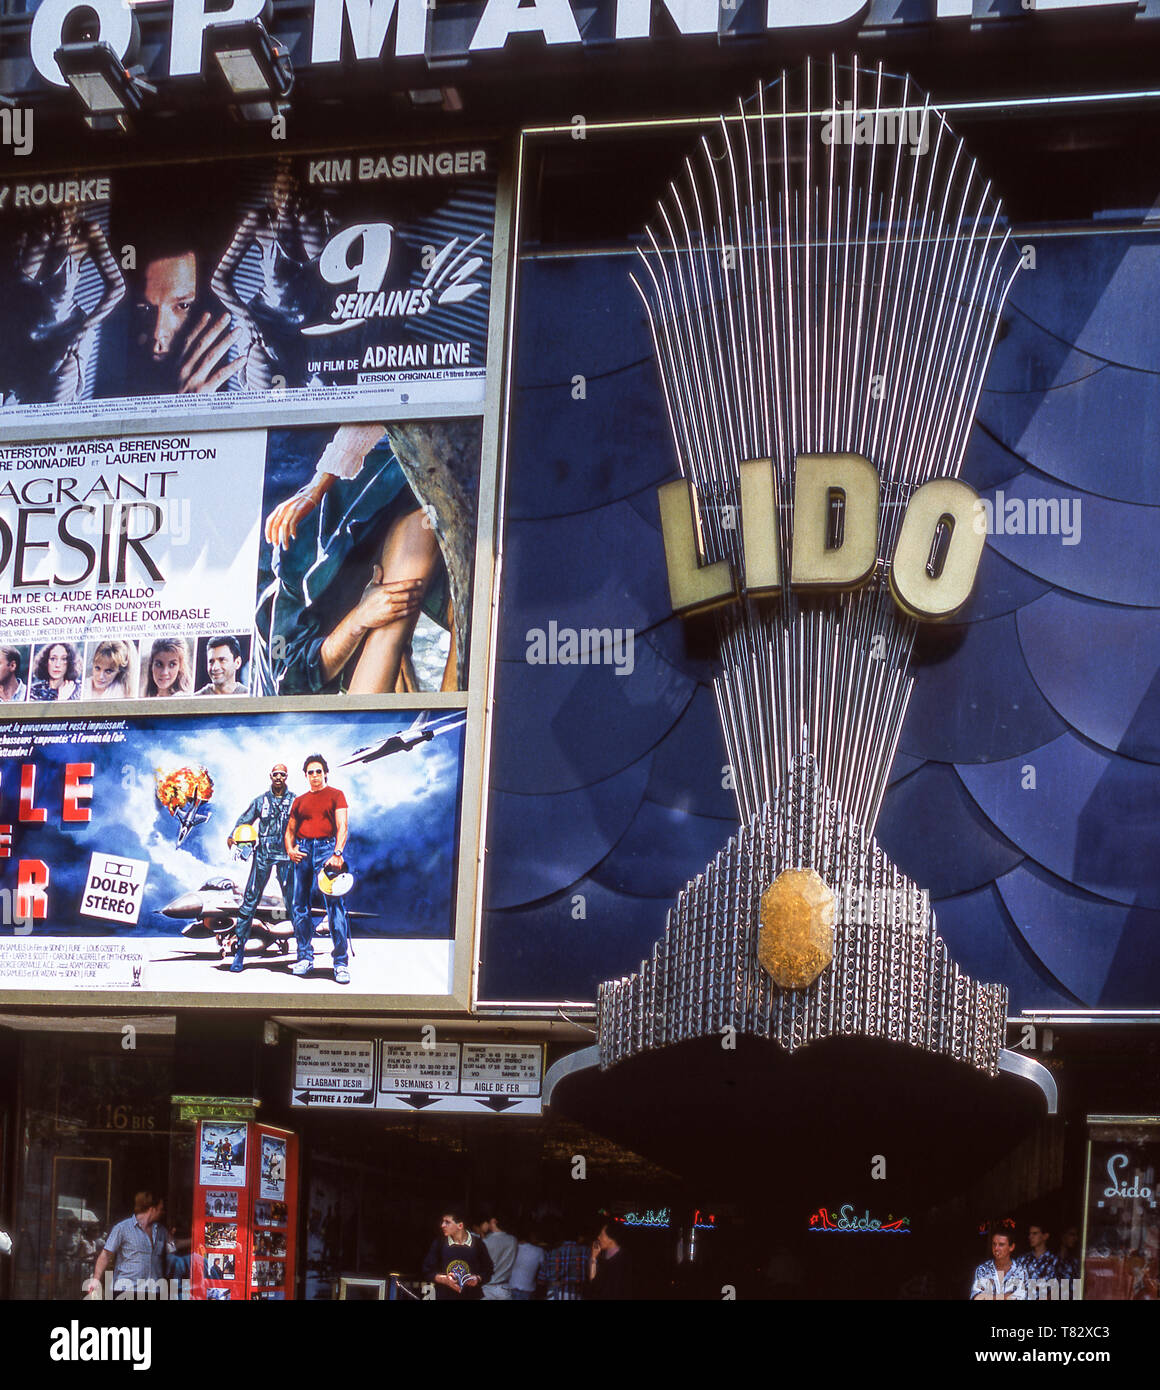 The Lido on the Champs-Elysees still offers a cabaret of girls with feathers. - Stock Image